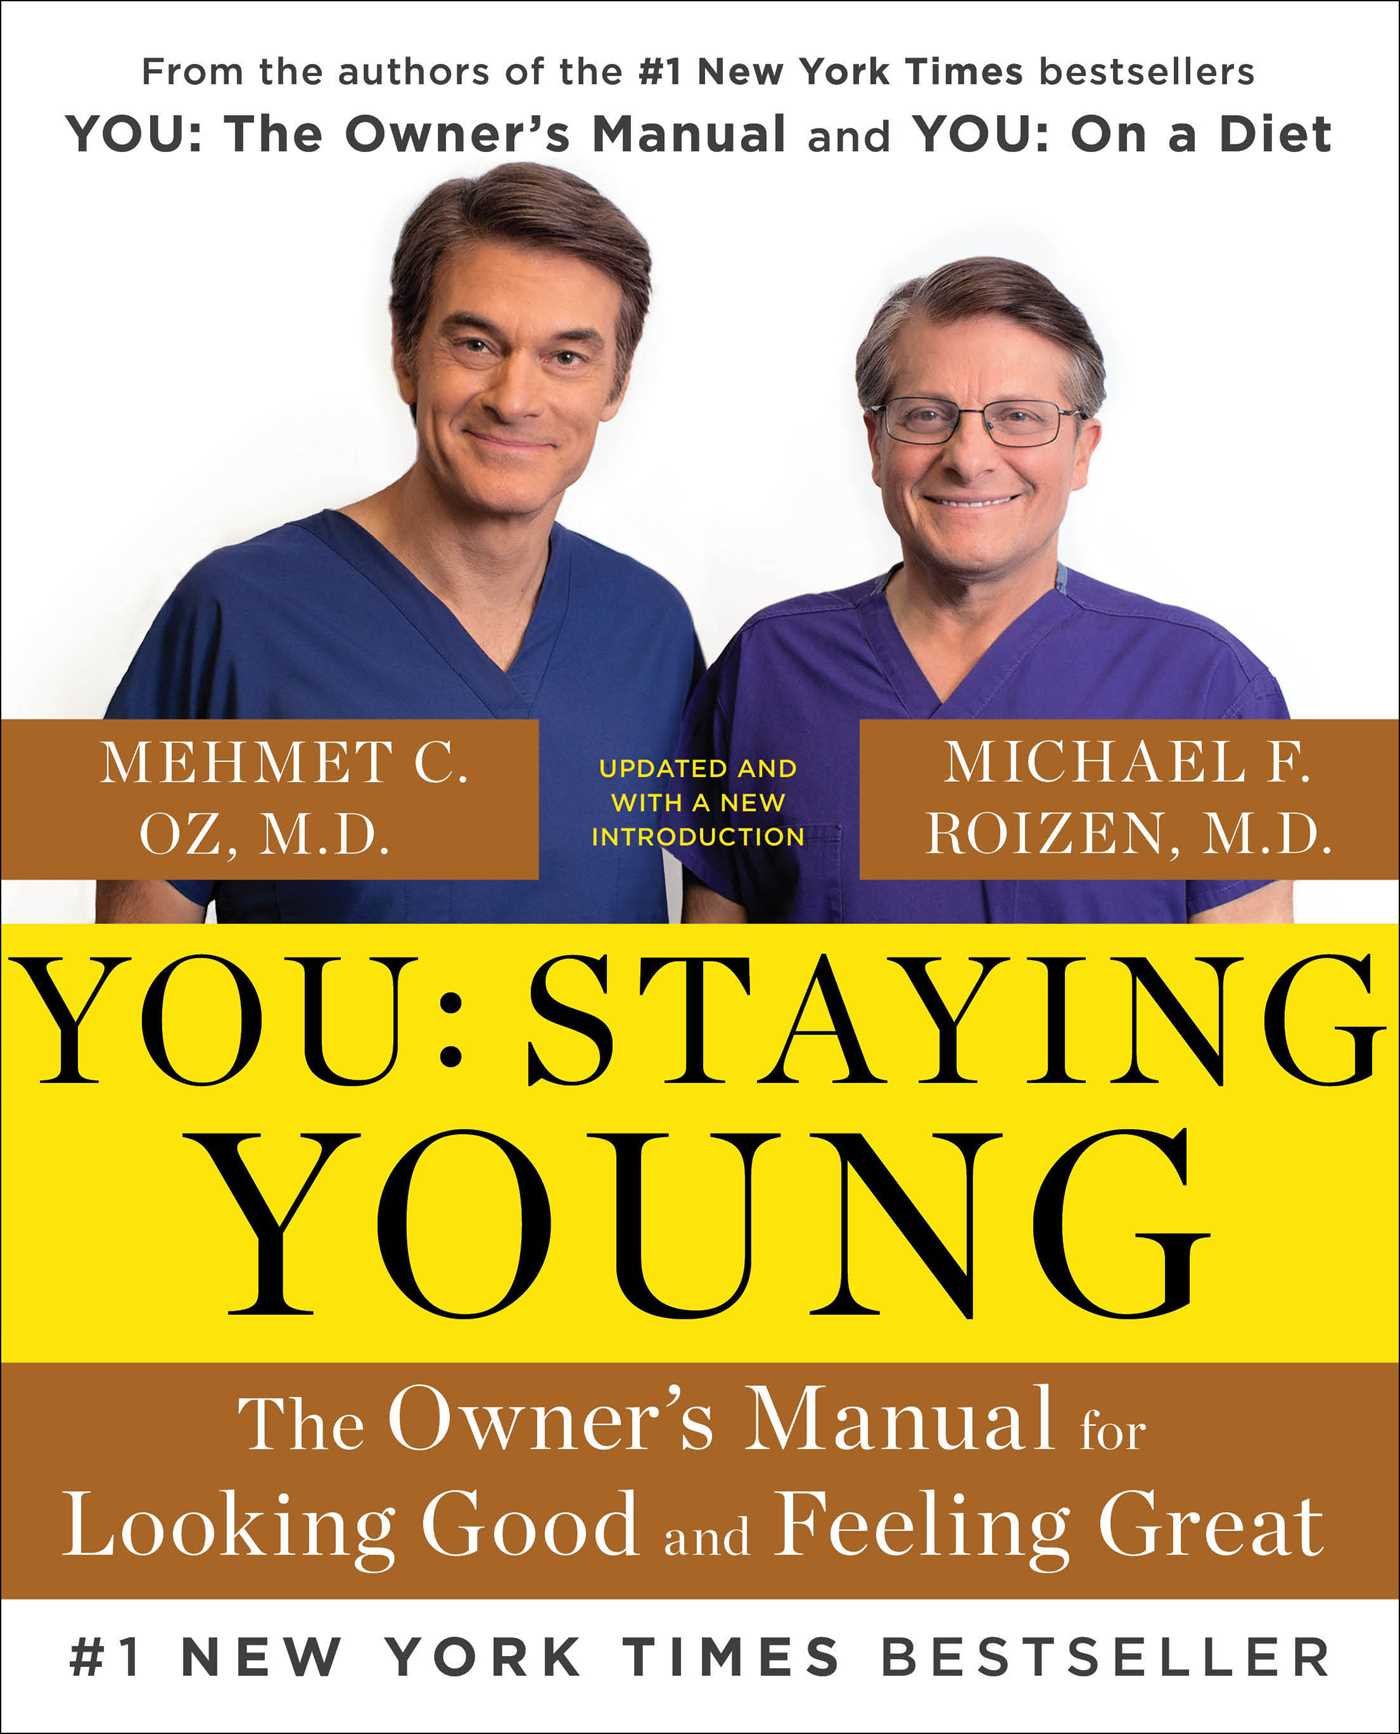 You-staying-young-9781416554059_hr